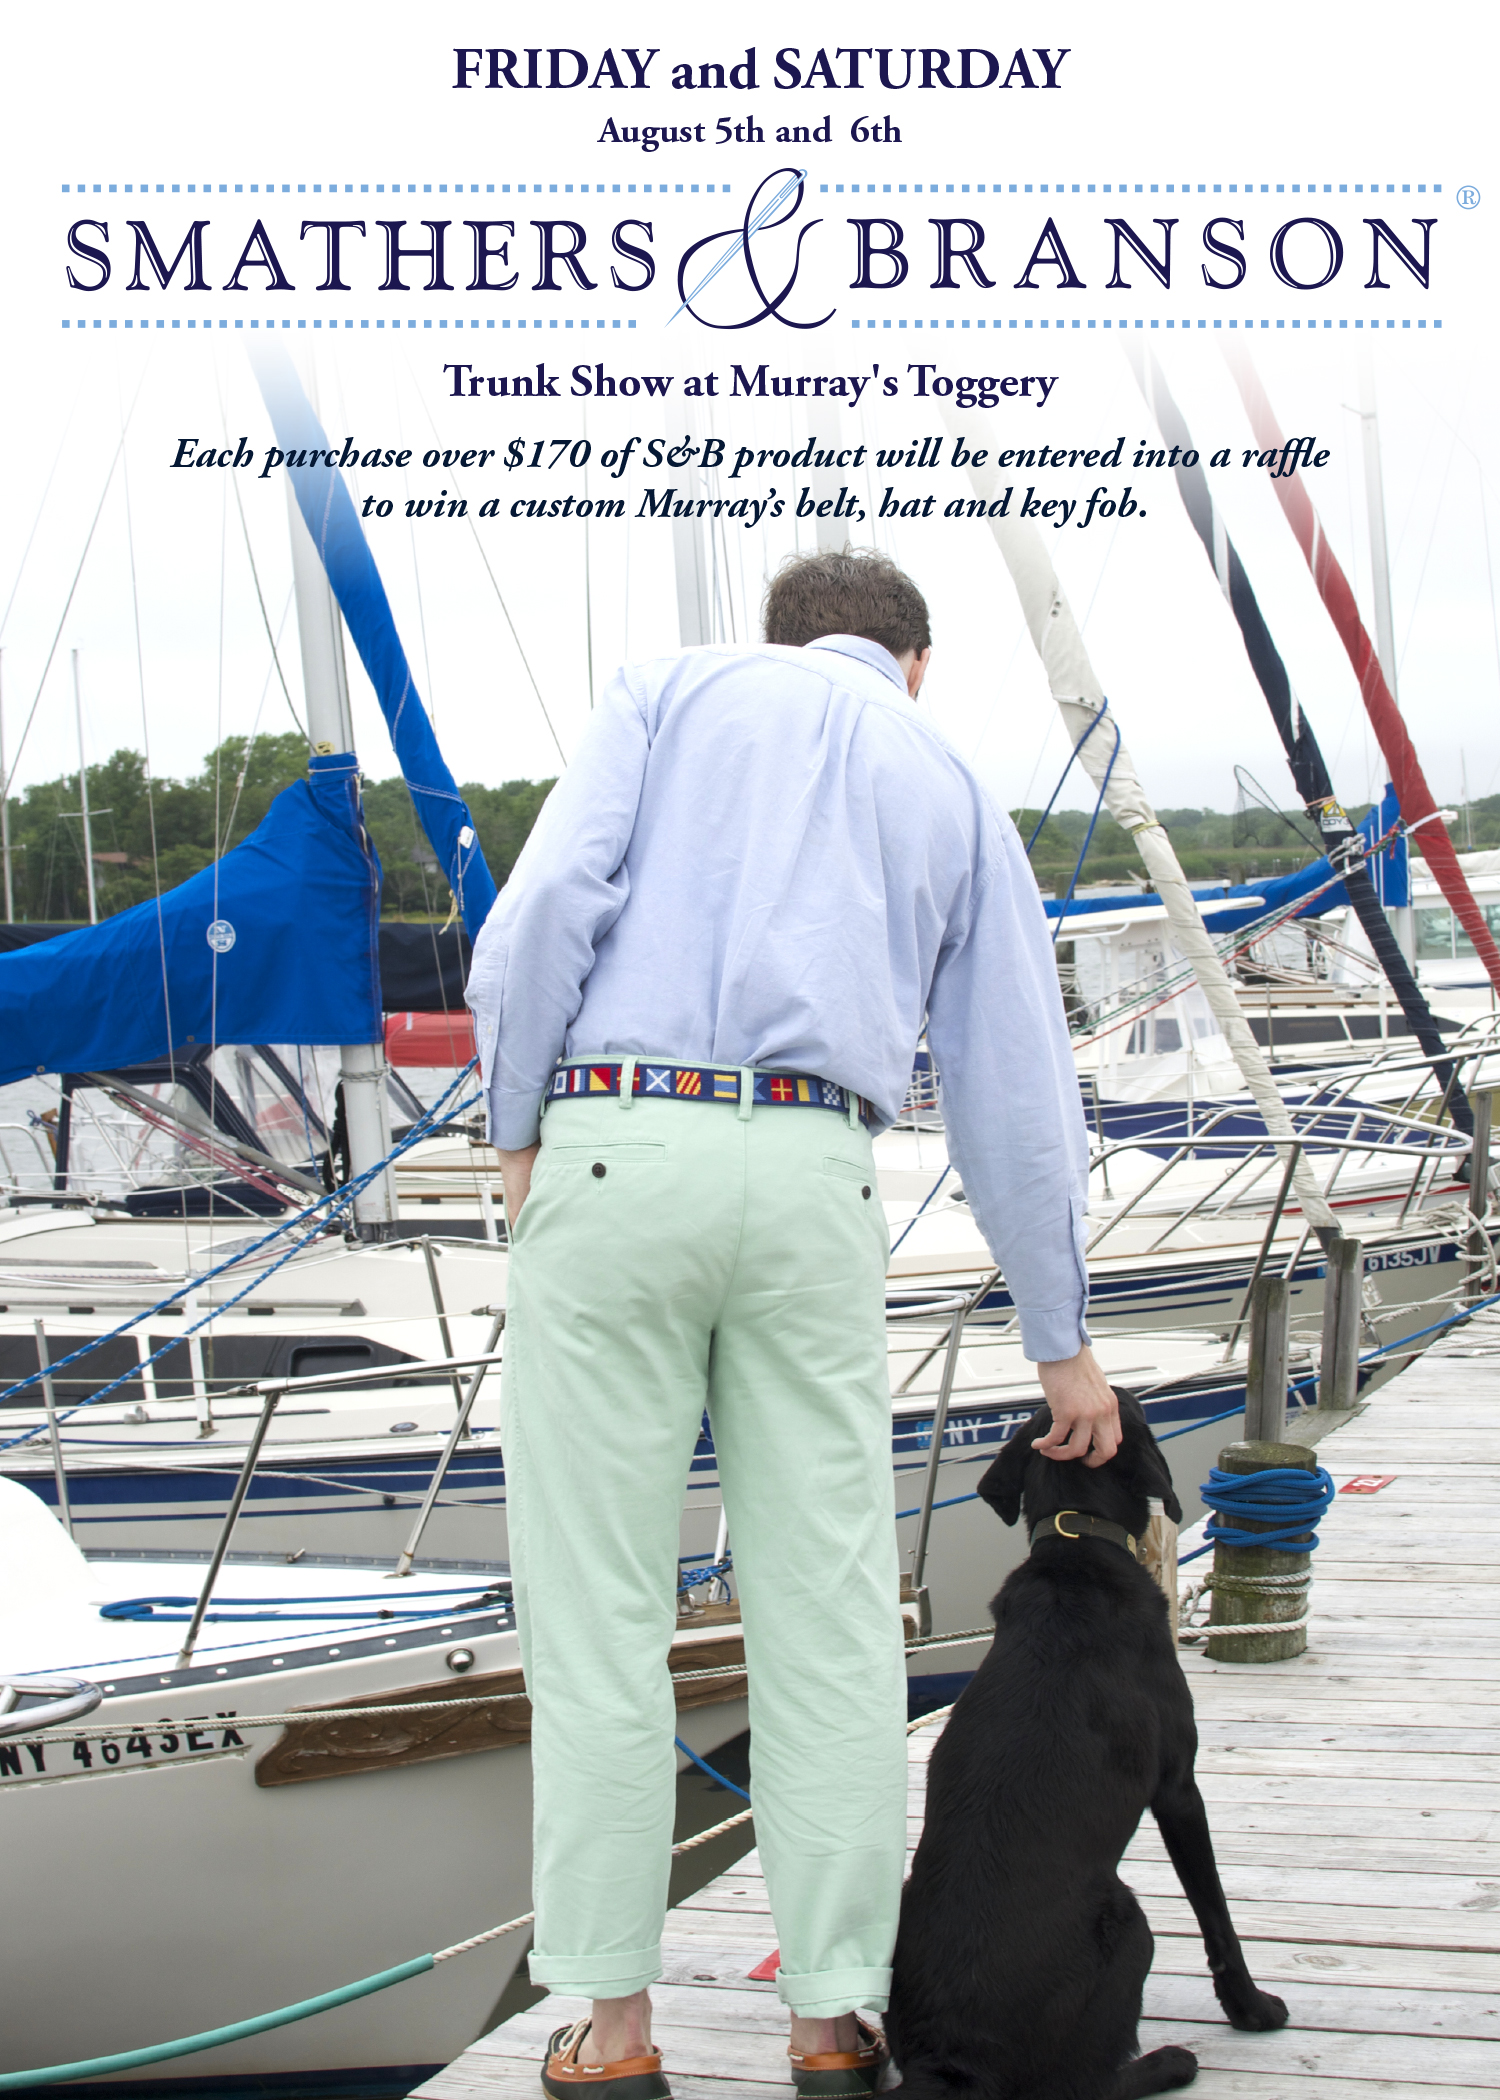 Smathers & Branson Email Promotional Poster for Murray's Toggery in Nantucket